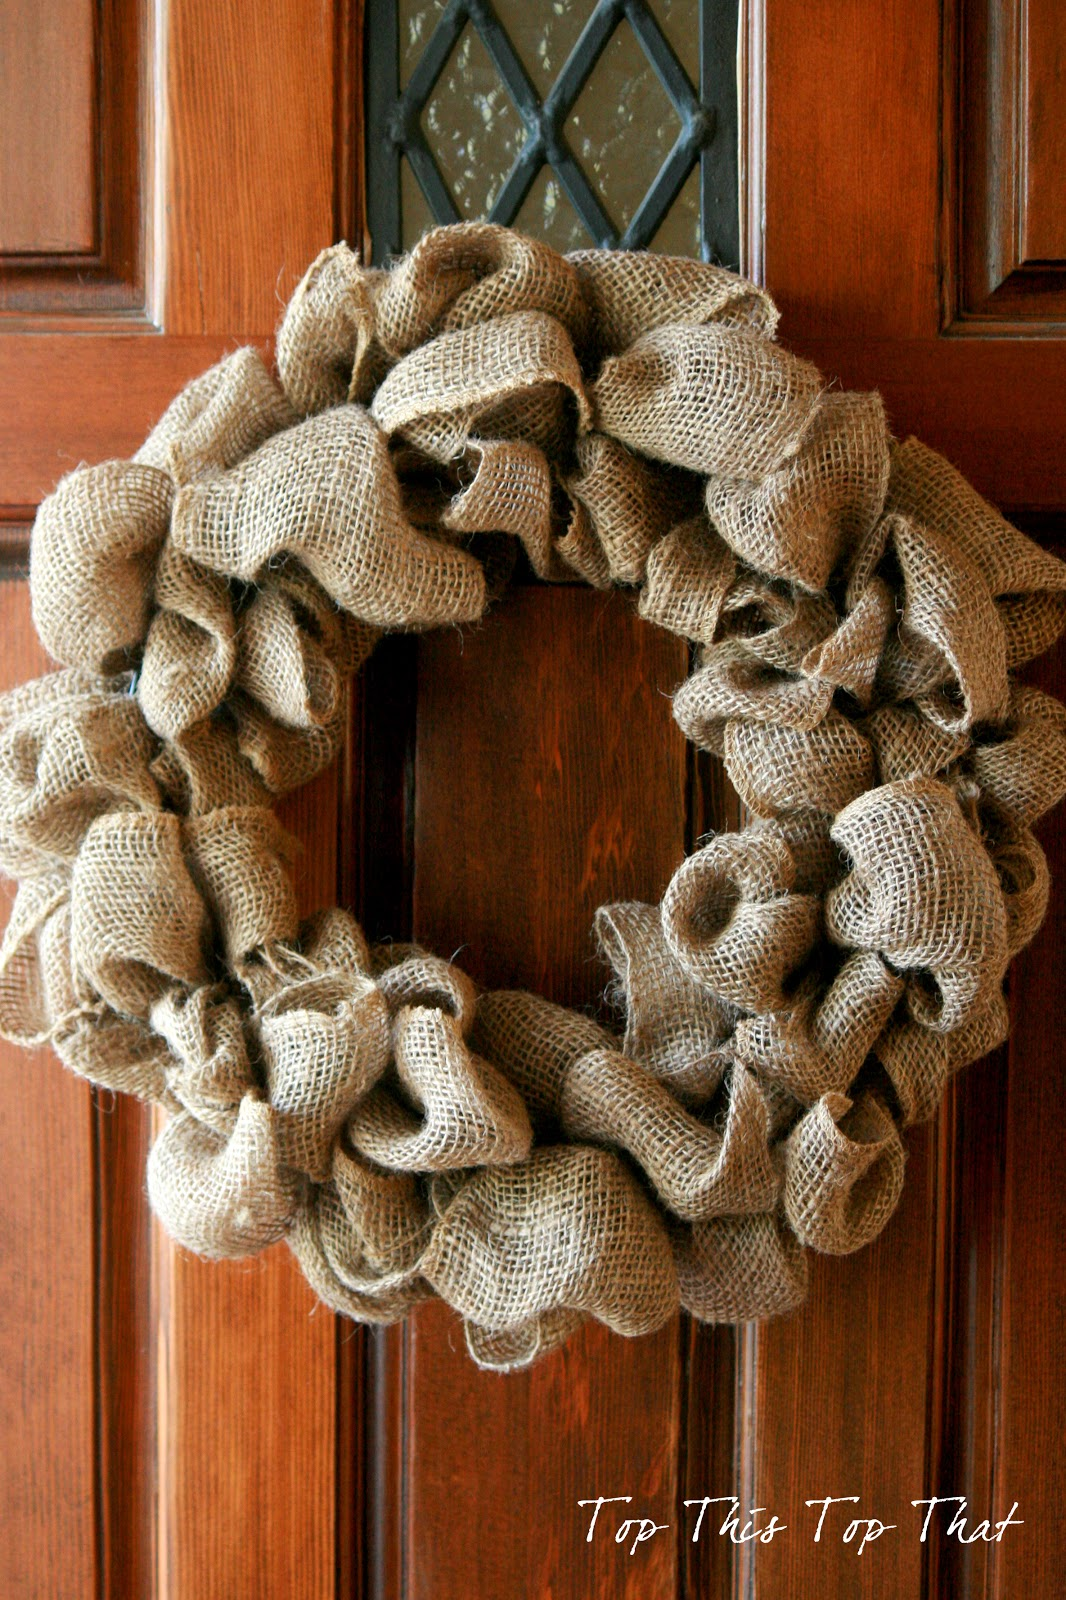 Burlap wreaths have been all the rage for a while now, and they probably will continue to be because: 1) they're cute; 2) they're versatile and can easily be decorated and adapted for different holidays/seasons; and 3) they're super simple to fihideqavicah.gq's honor!